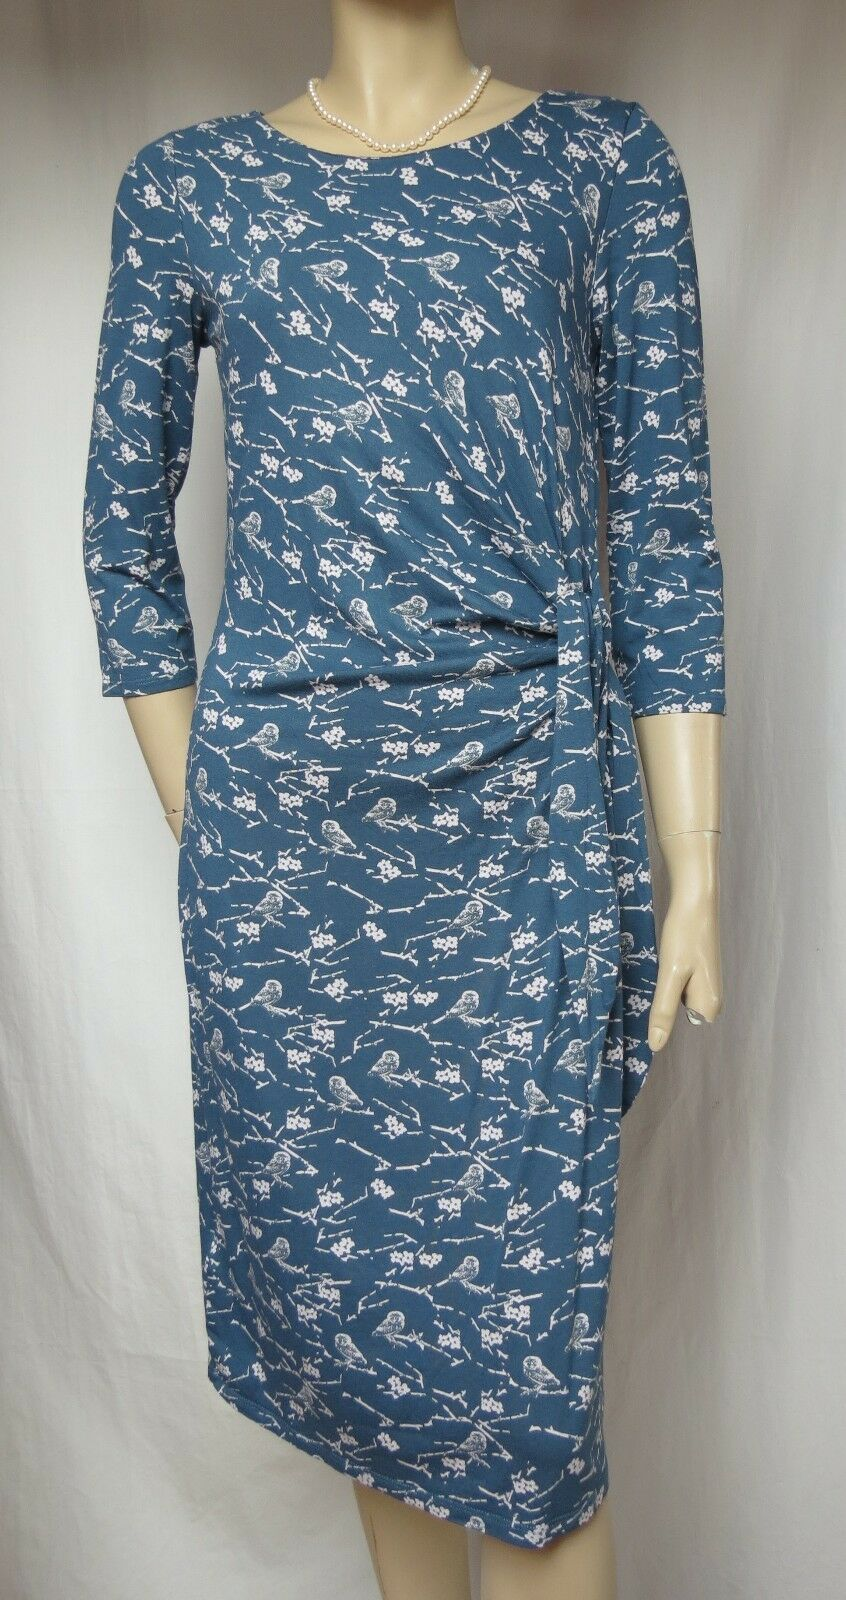 Laura Ashley Kleid 36 Wickel-Optik blau weiß Blaumen Vögel Muster Viskose Jersey